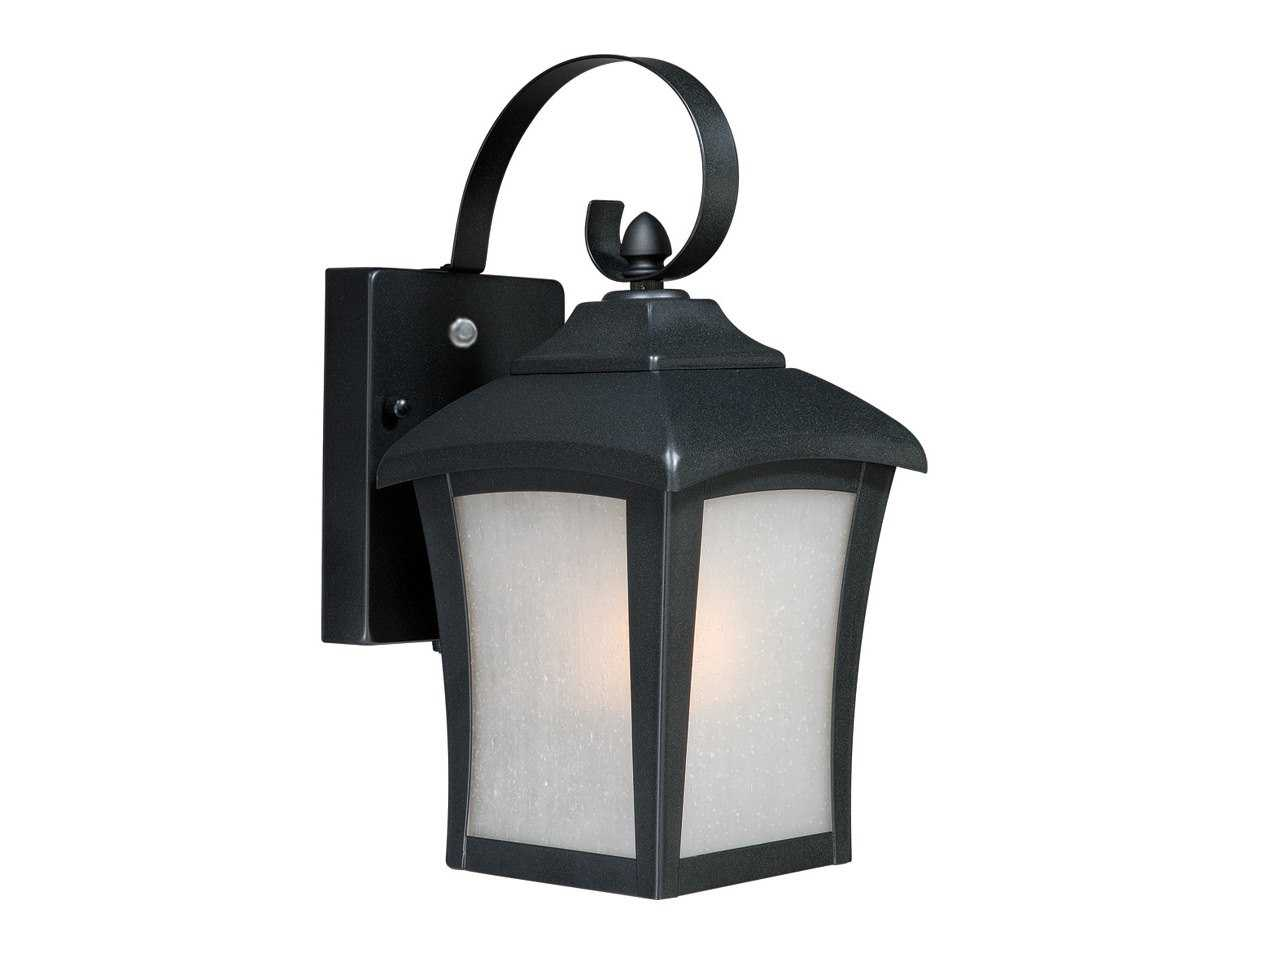 Vaxcel Boardwalk Dark Bronze & Frosted Glass 6 Outdoor Wall Light T0002